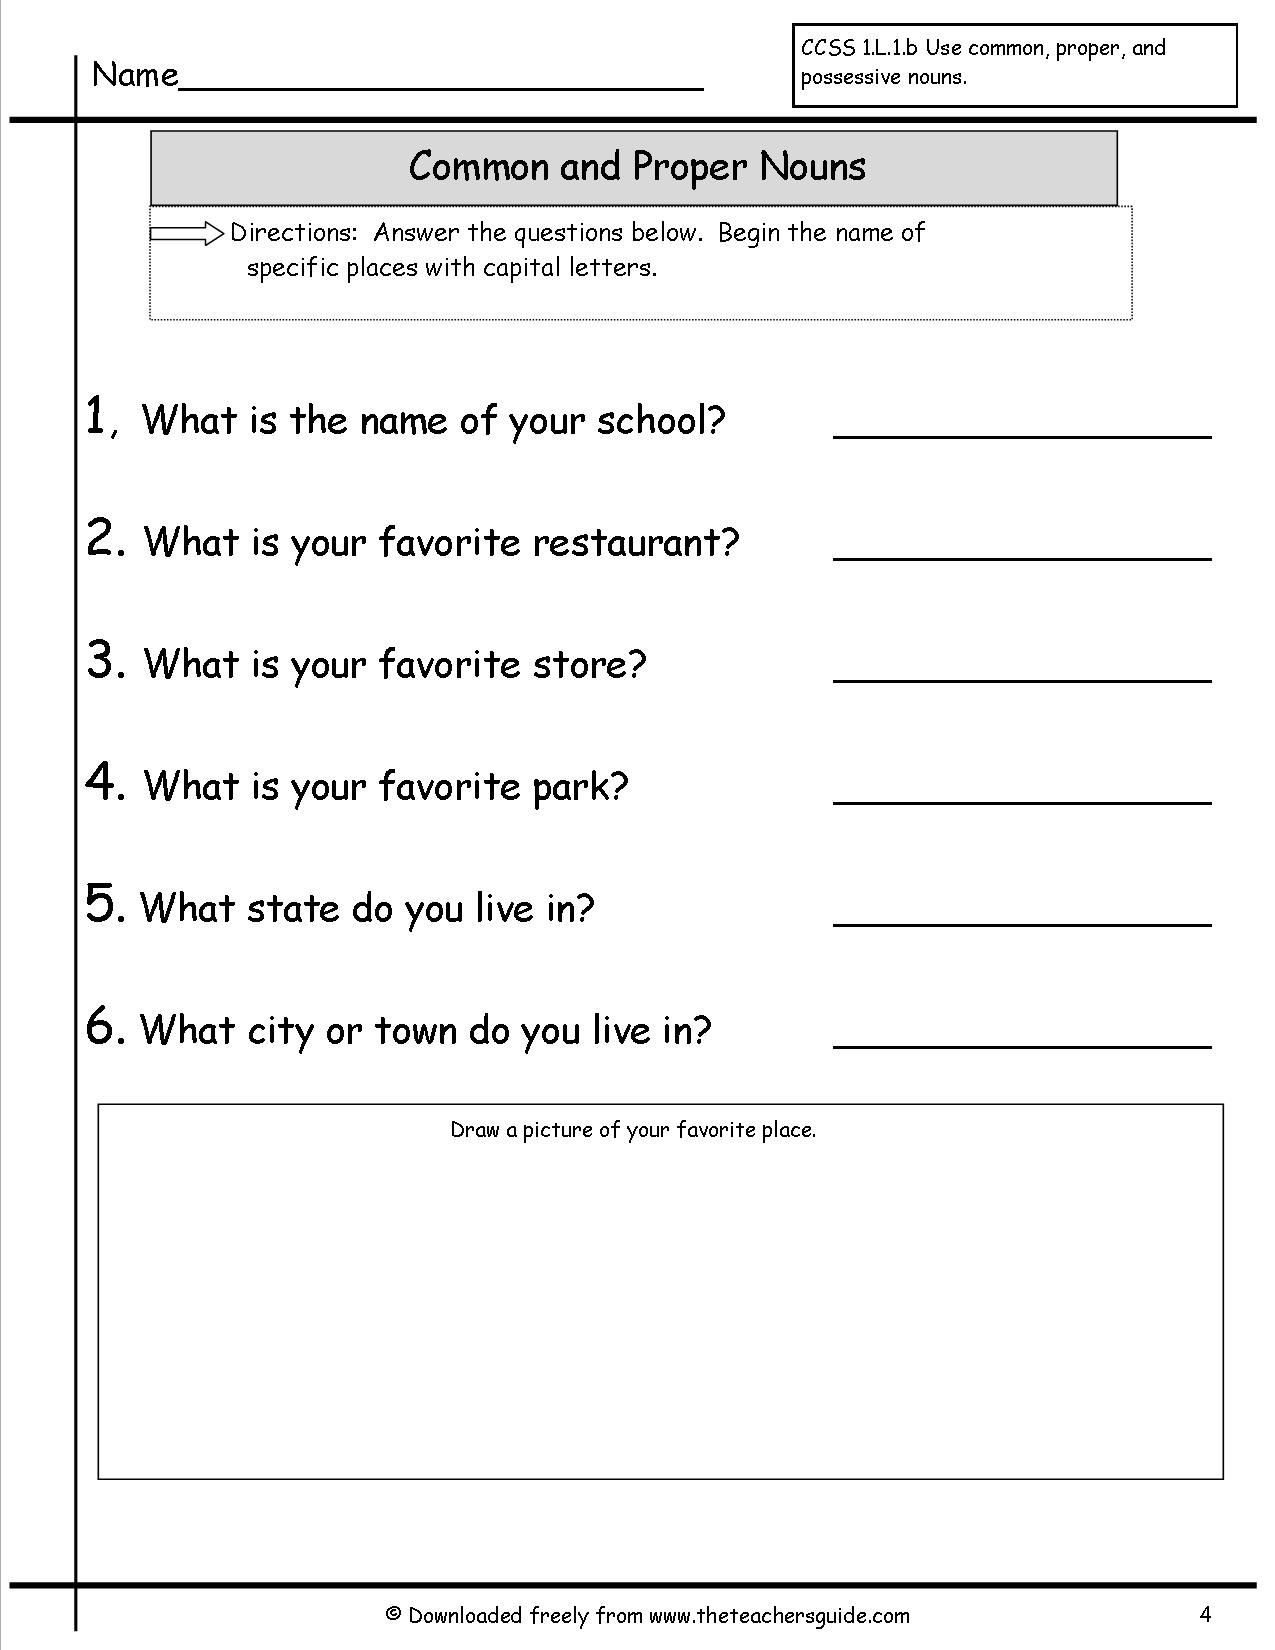 Noun Worksheets 2nd Grade Mon and Proper Nouns Worksheet